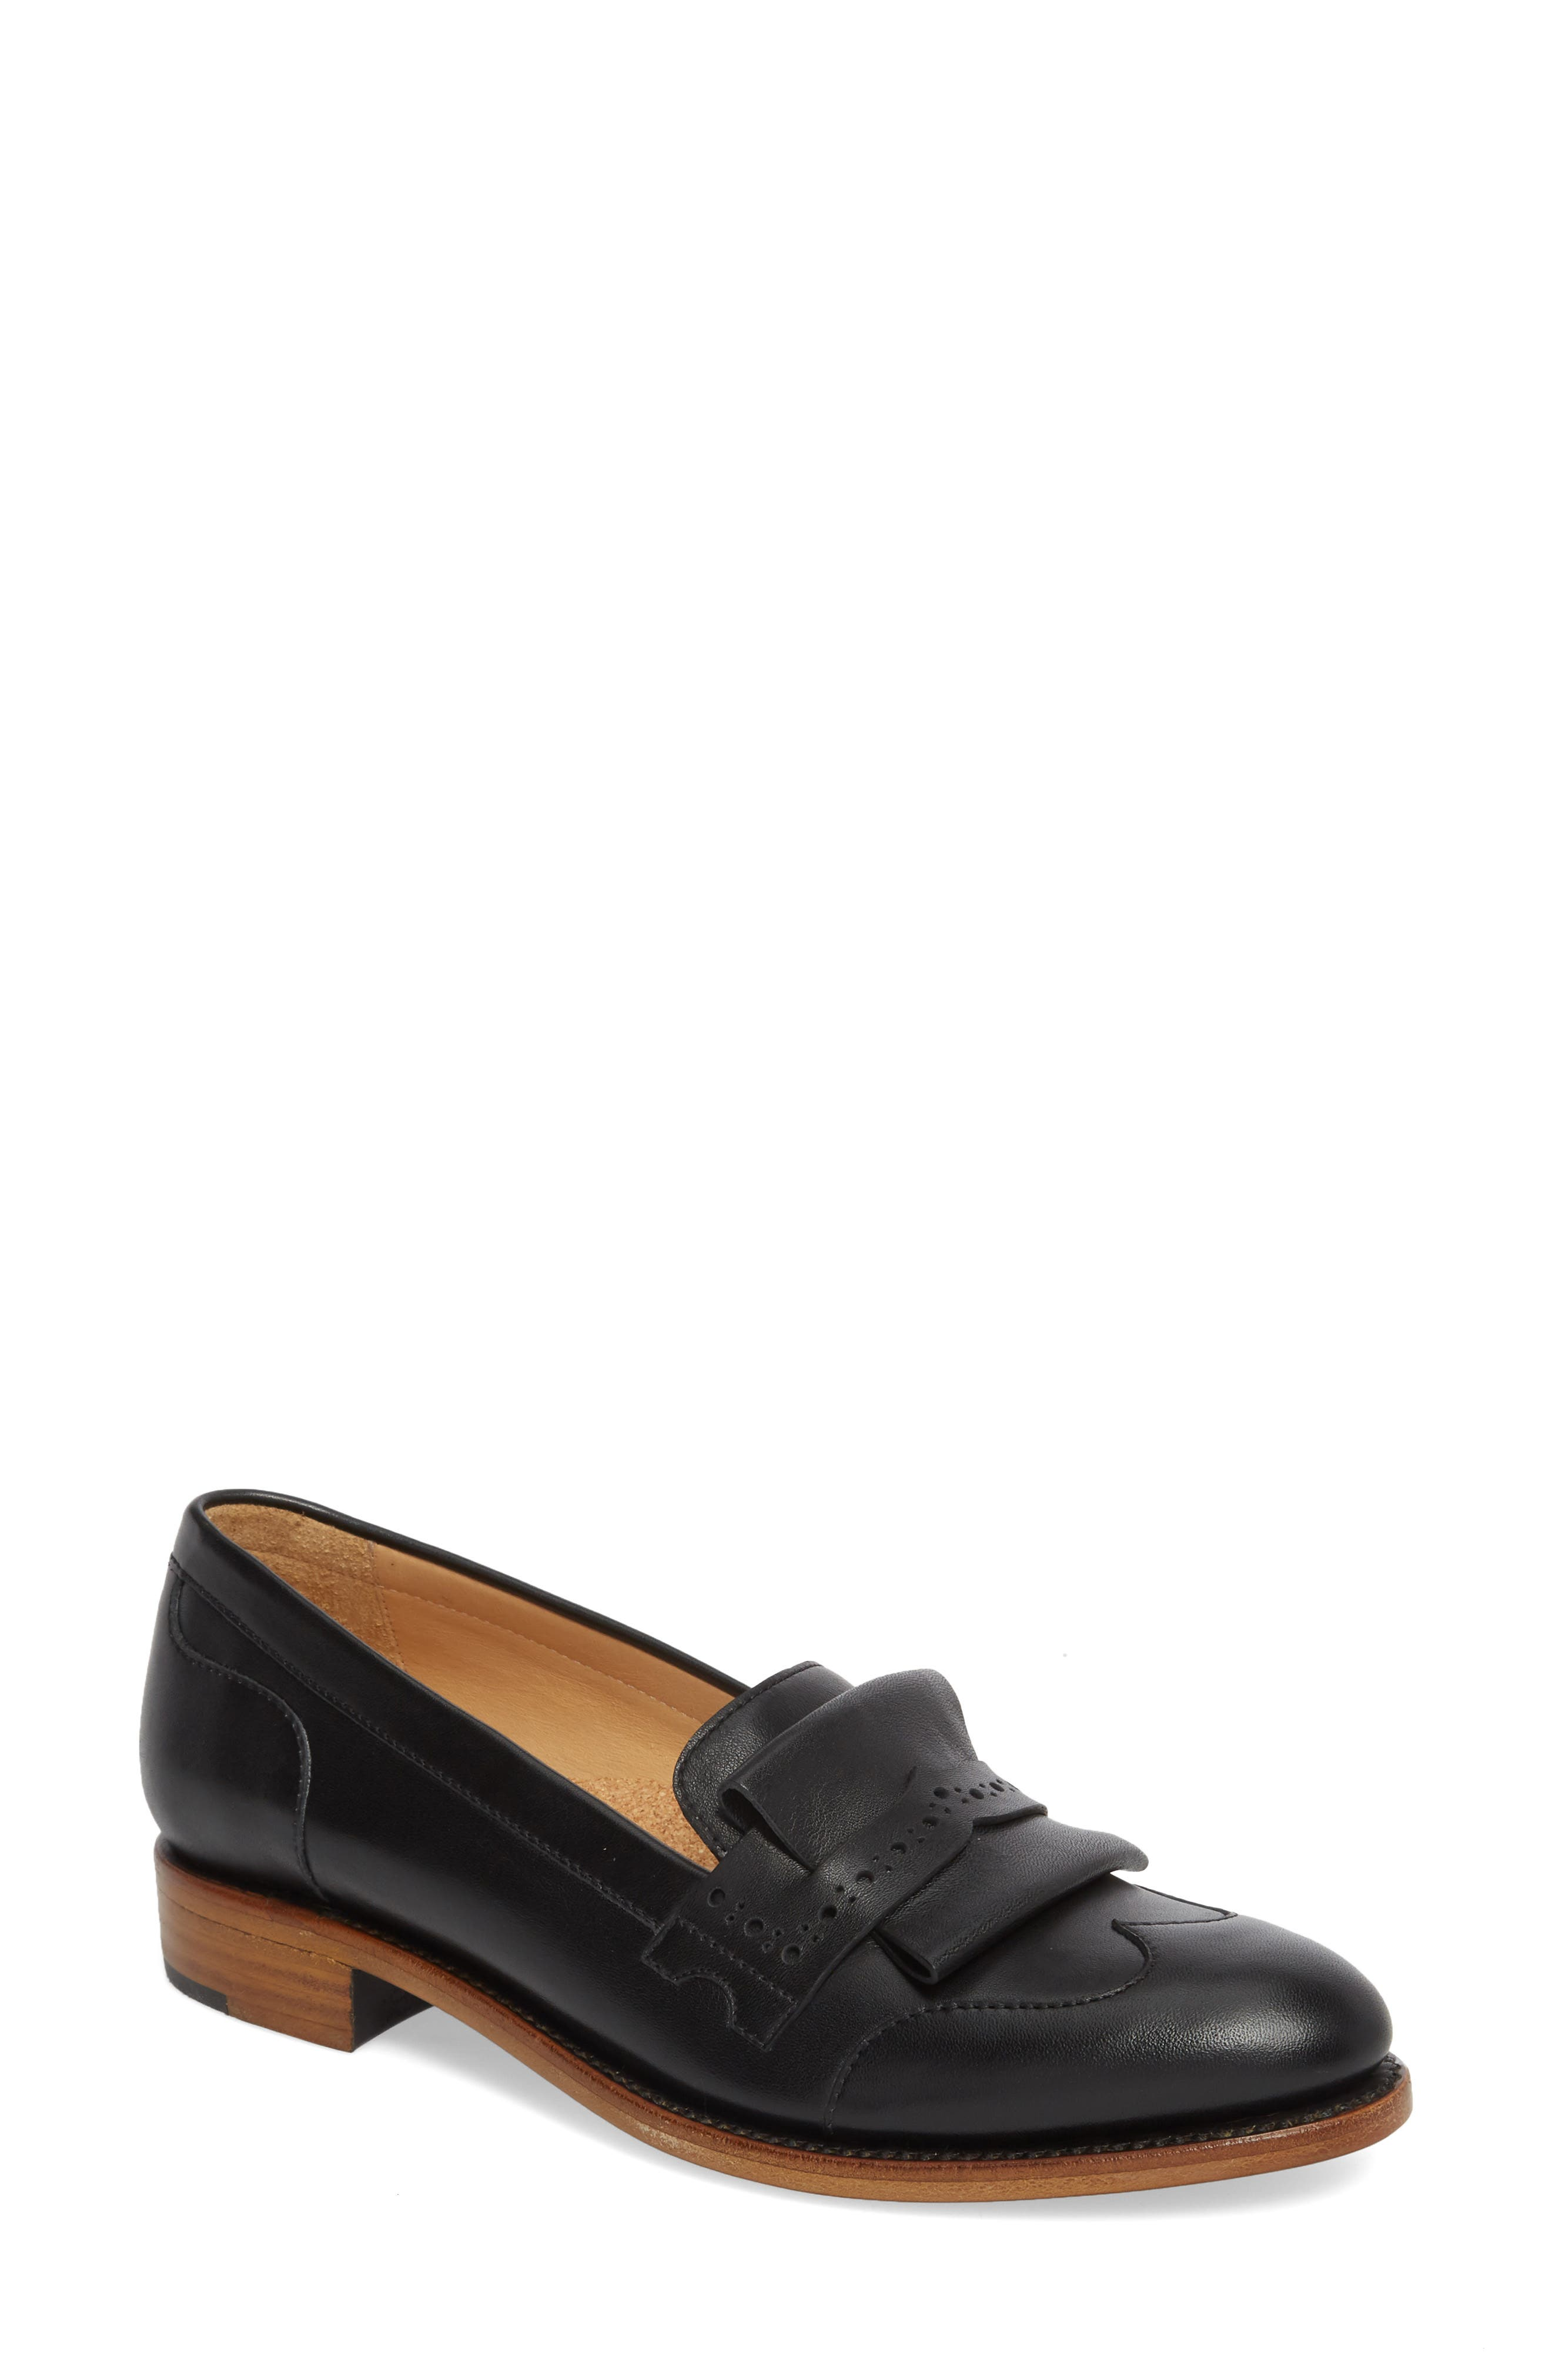 Mr. Dickie Loafer,                             Main thumbnail 1, color,                             BLACK